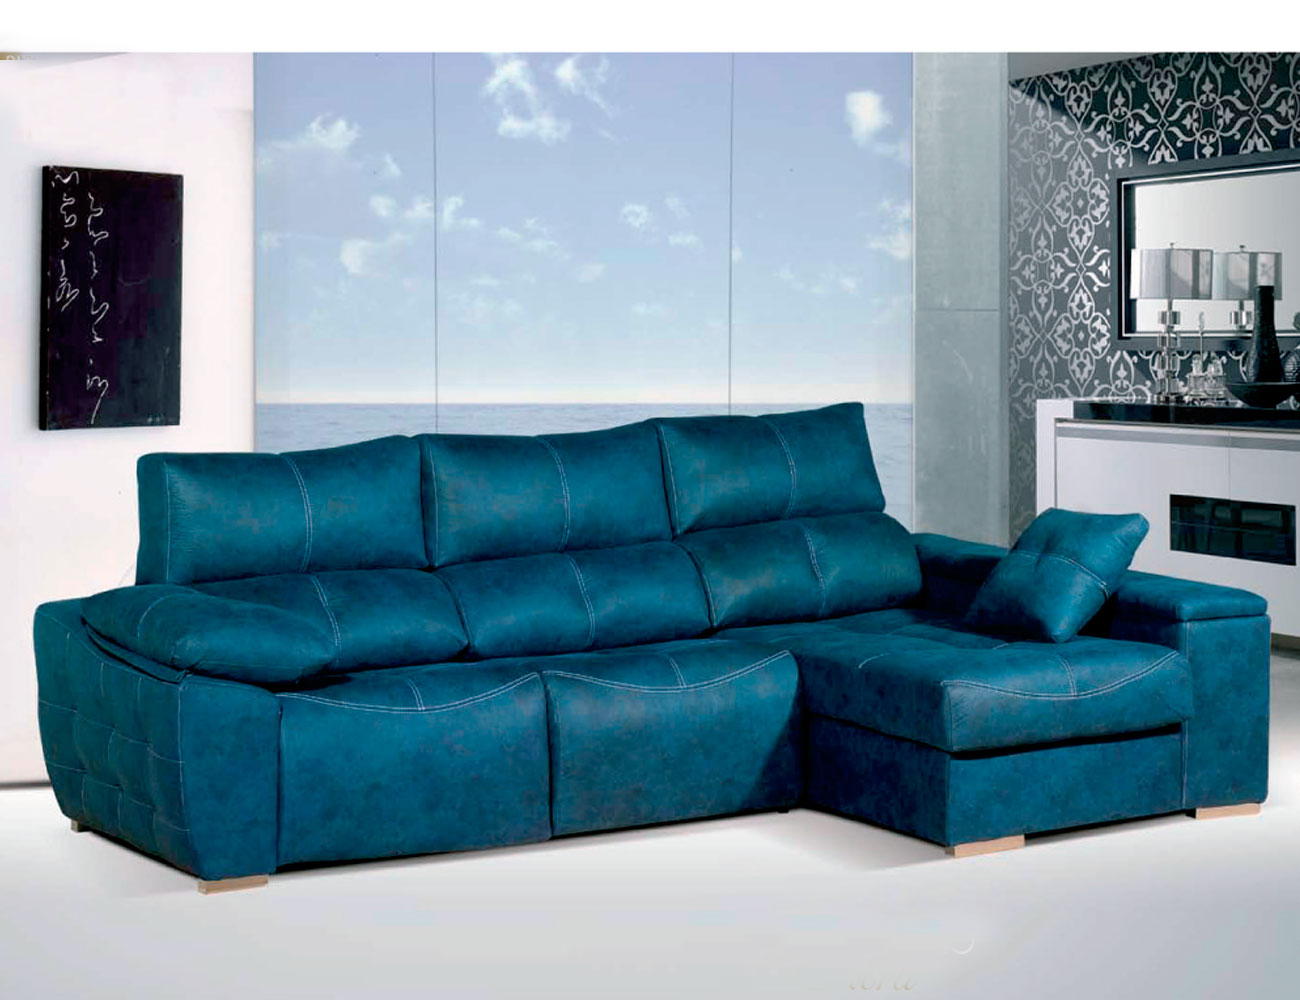 Sofa chaiselongue relax 2 motores anti manchas turquesa29